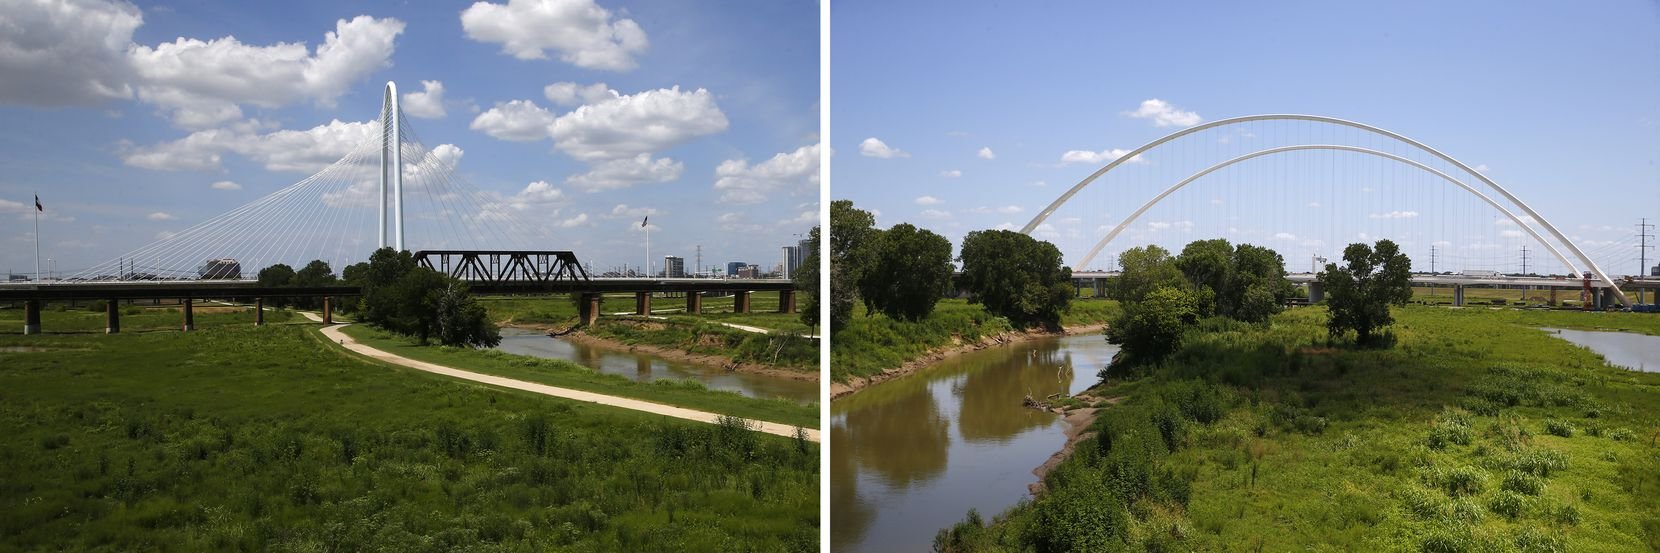 The proposed Harold Simmons Park would stretch from just north of the Margaret Hunt Hill bridge (left) to the Margaret McDermott Bridge (right), between the Trinity River levees in Dallas.